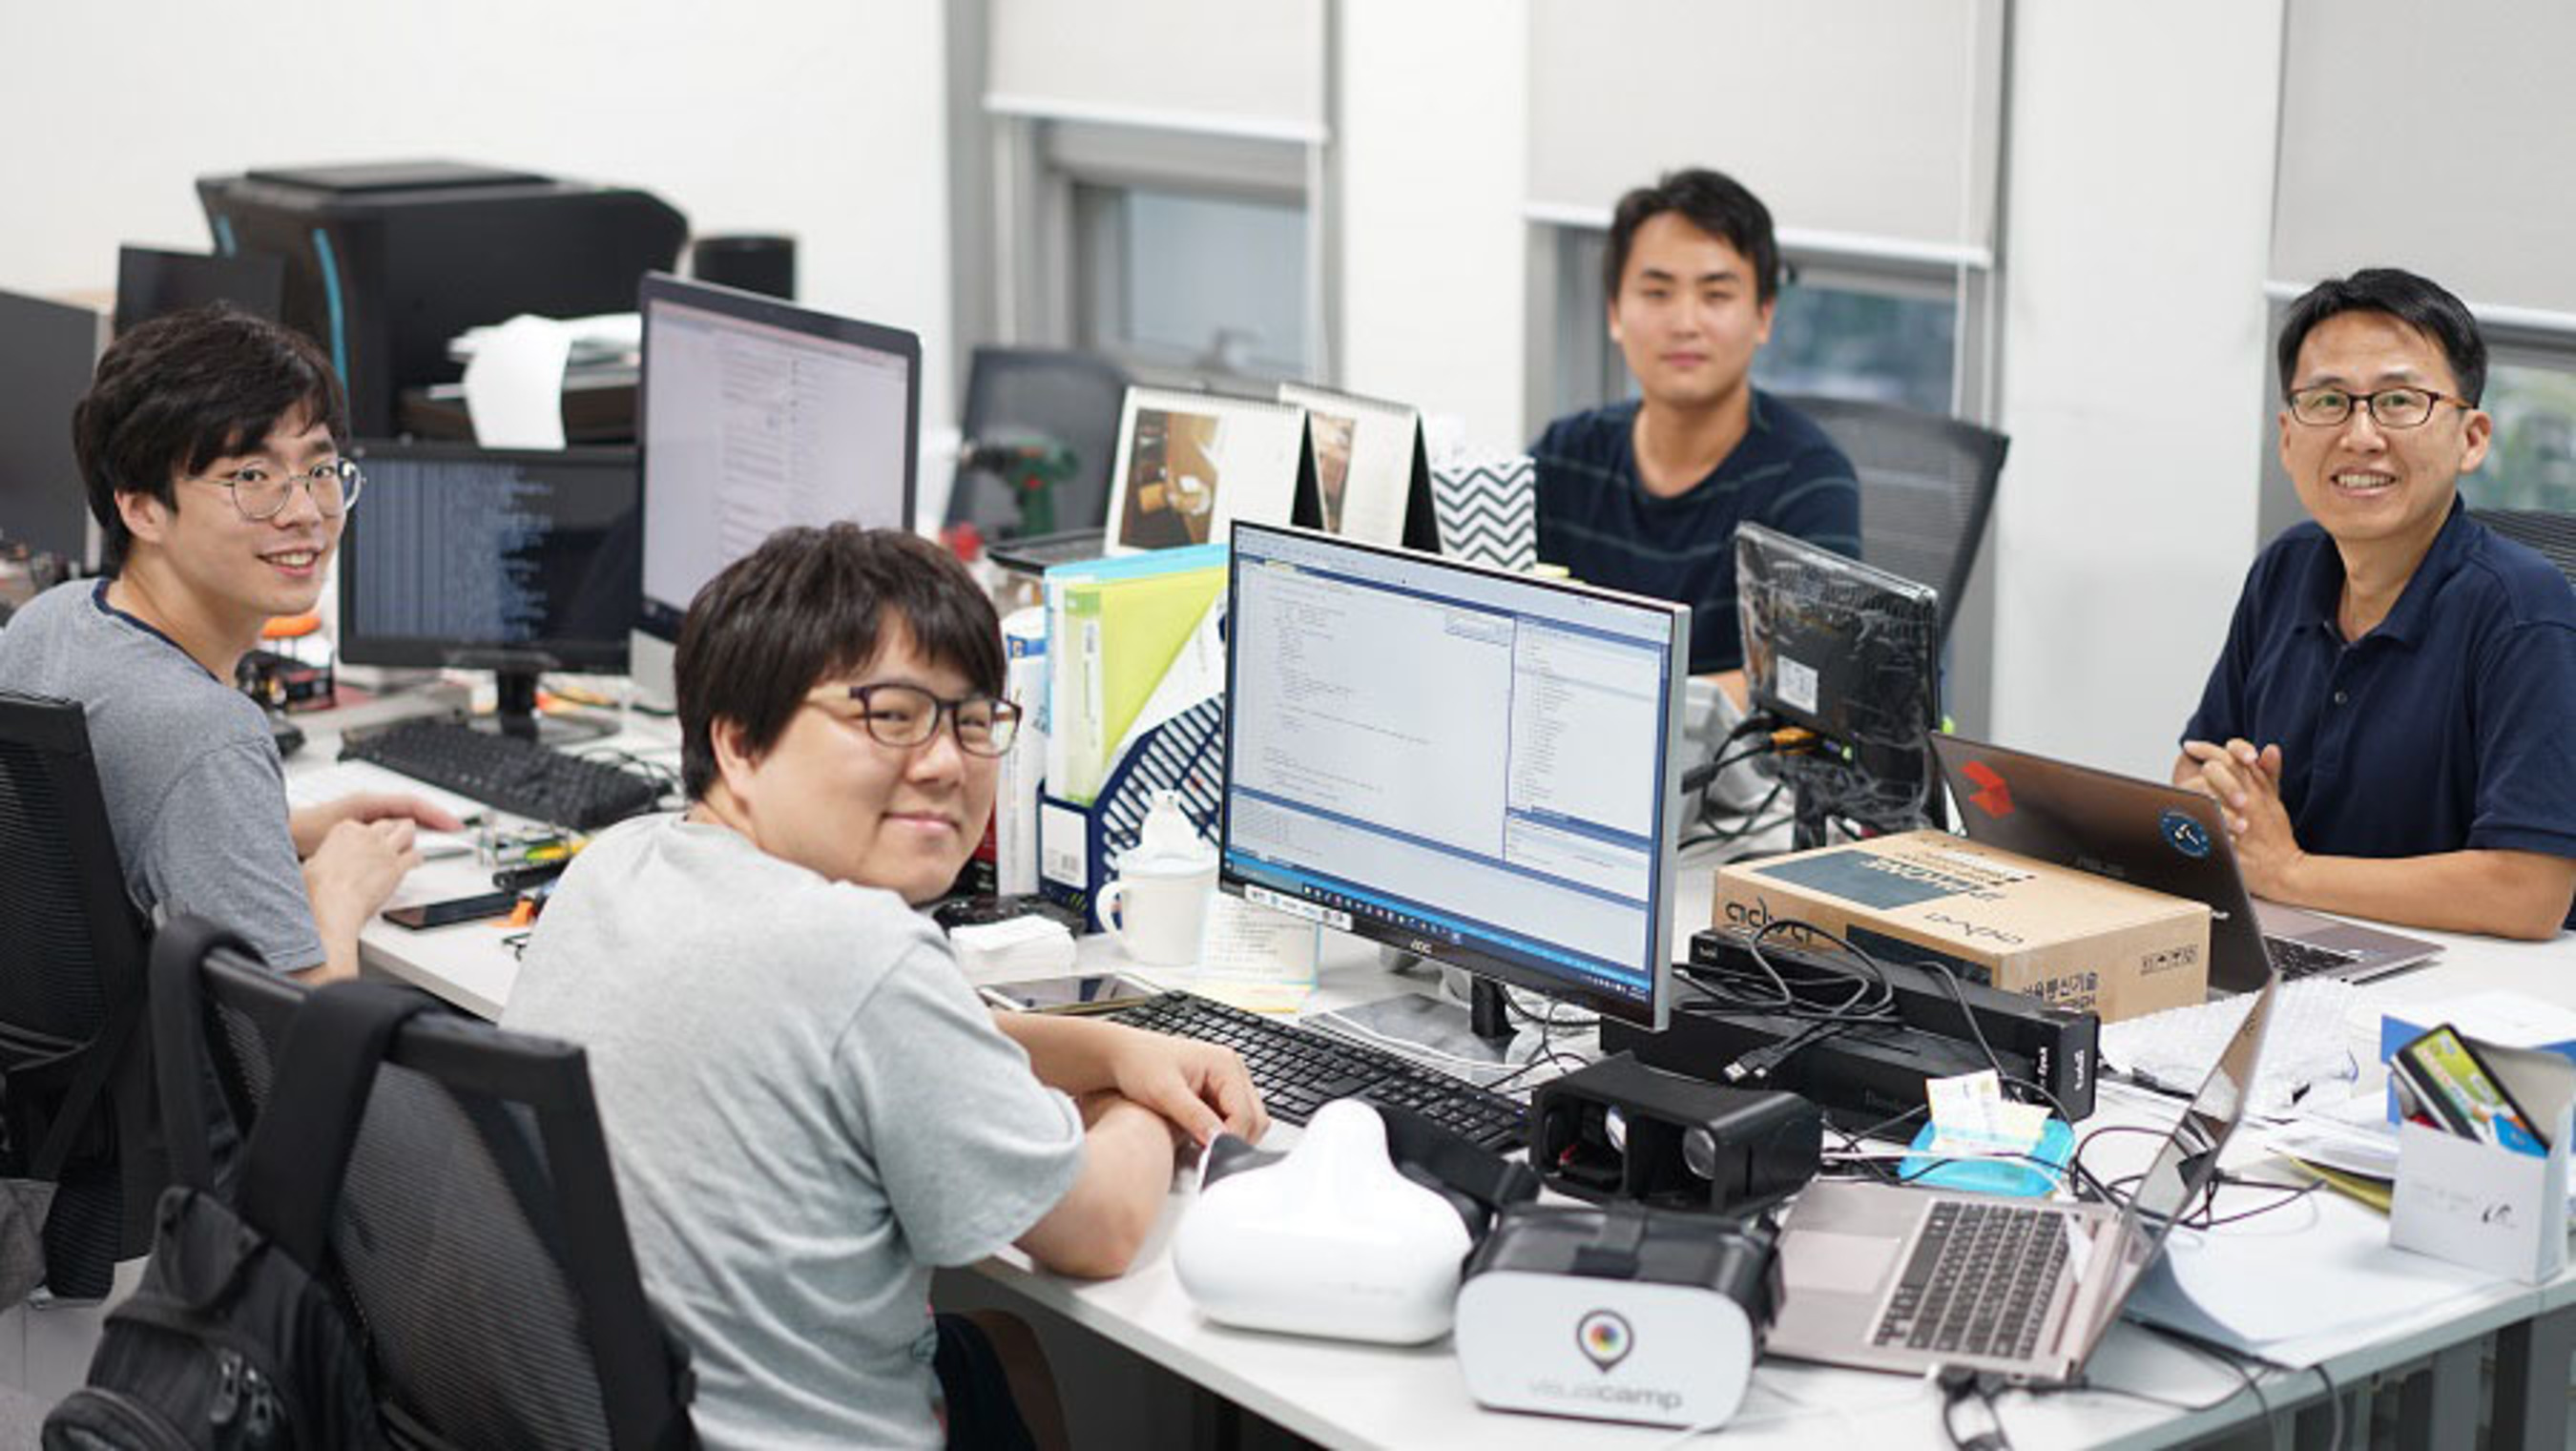 """Korean Startup """"VisualCamp"""" known for its eye tracking technology with Virtual Reality used for mobile phones has been selected in Red Herring's Top 100 most promising startups in Asia."""